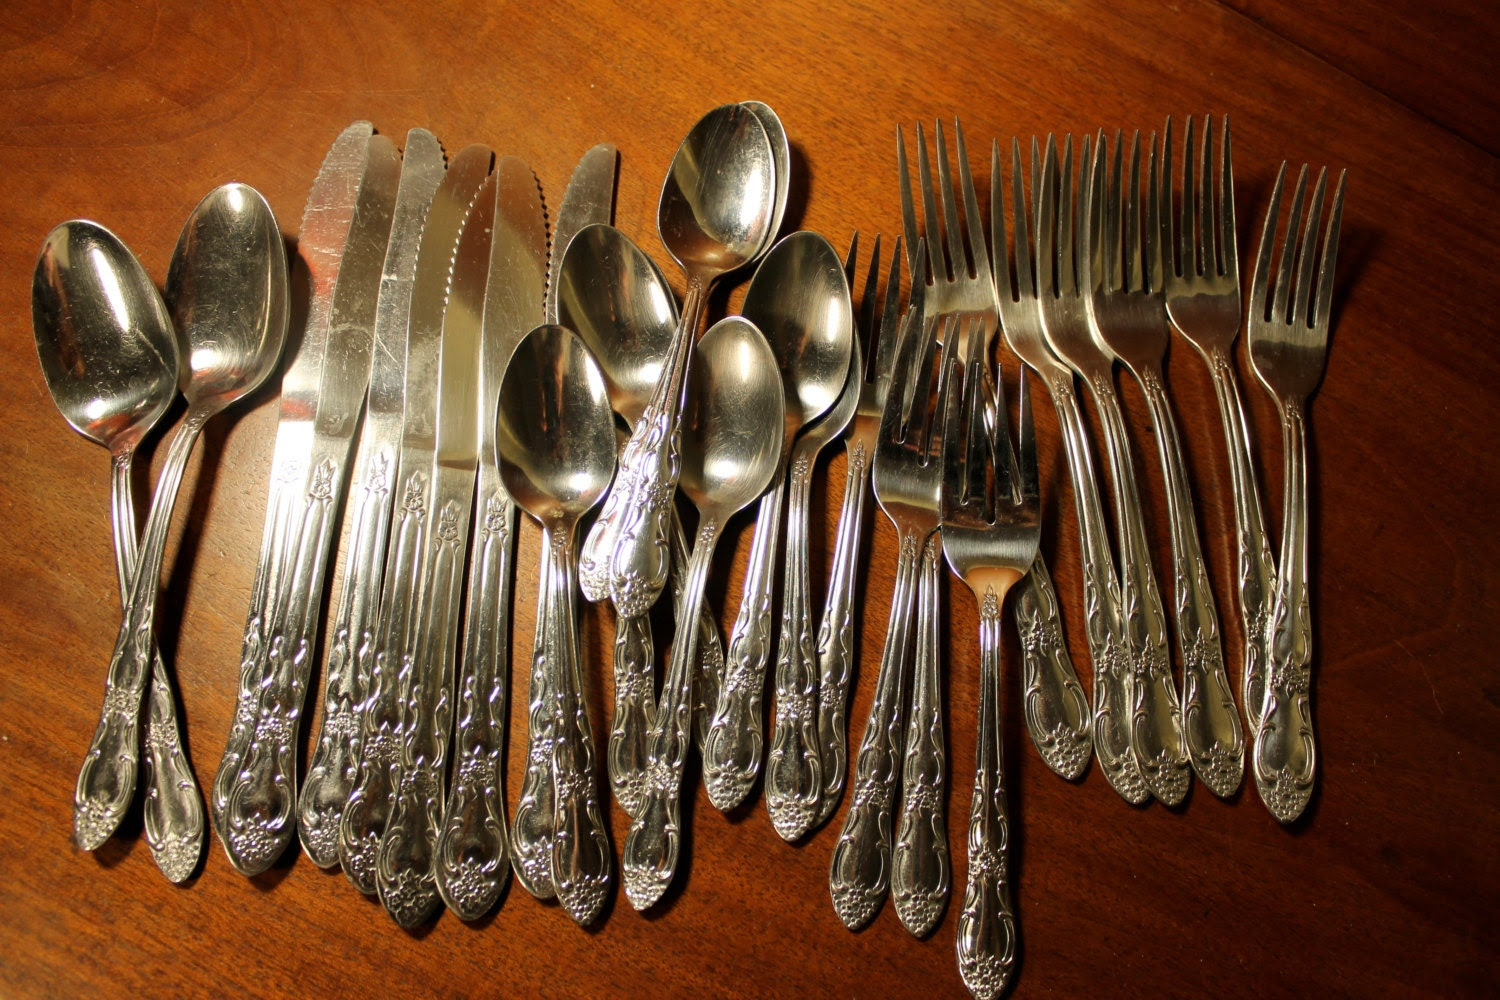 Vintage Flatware from Oneida in Thor OHS103 by AtomicHoliday